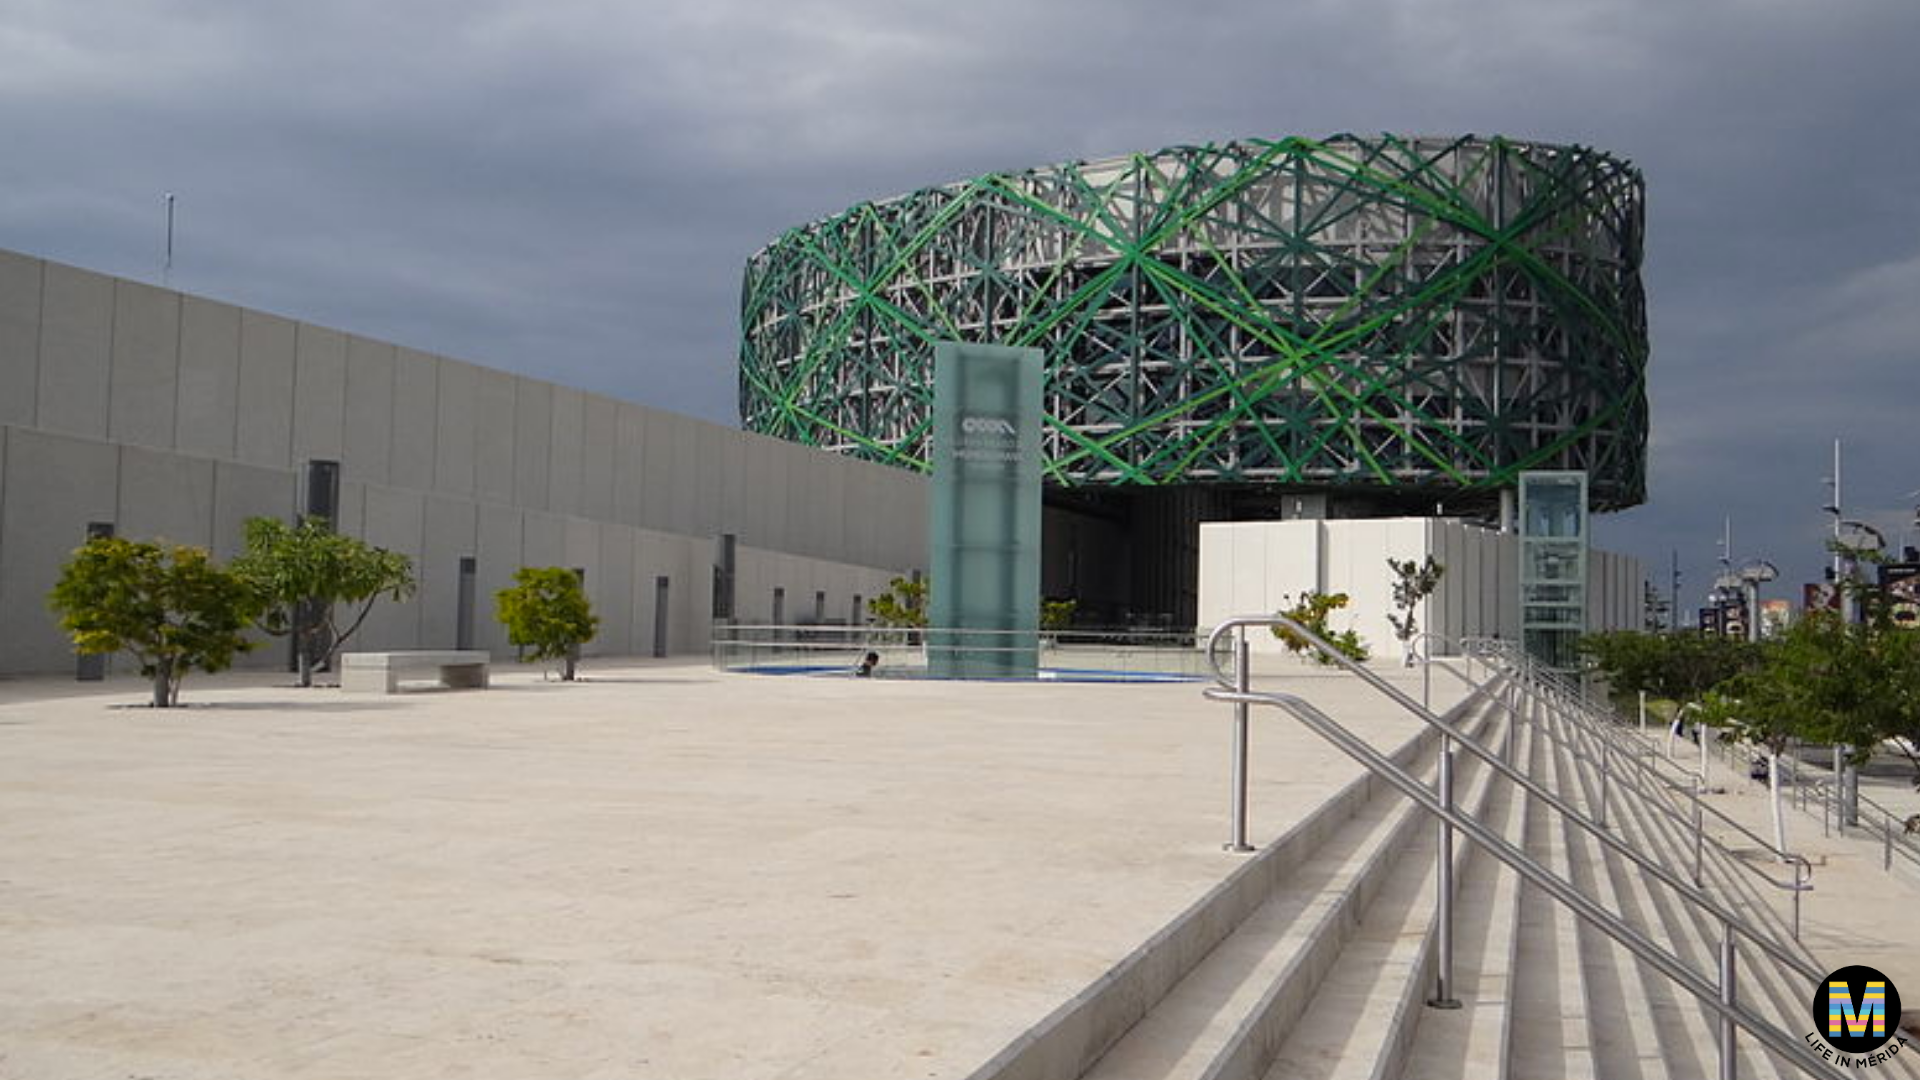 Museums in Mérida Mexico